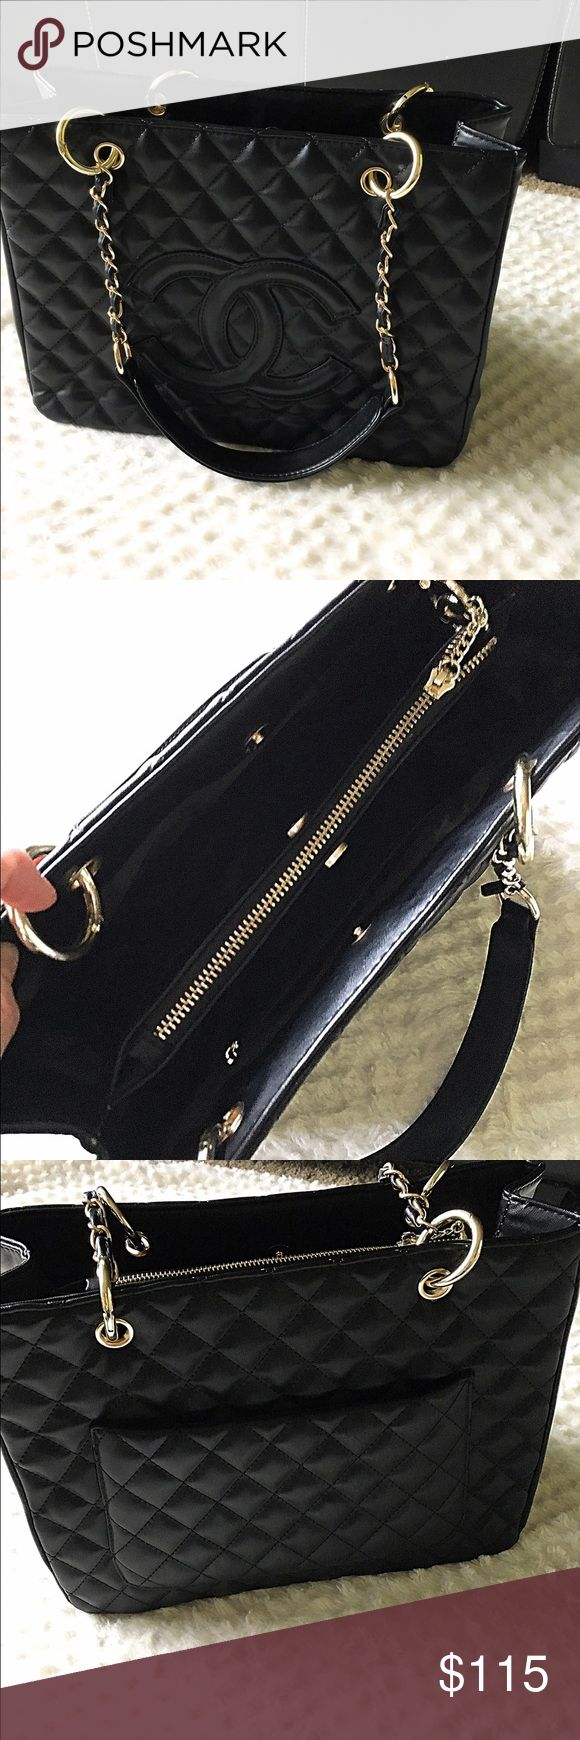 New!! Black purse 👛💋 New!!  Clean unused purse excellent condition faux leather A/X Armani Exchange Bags Hobos